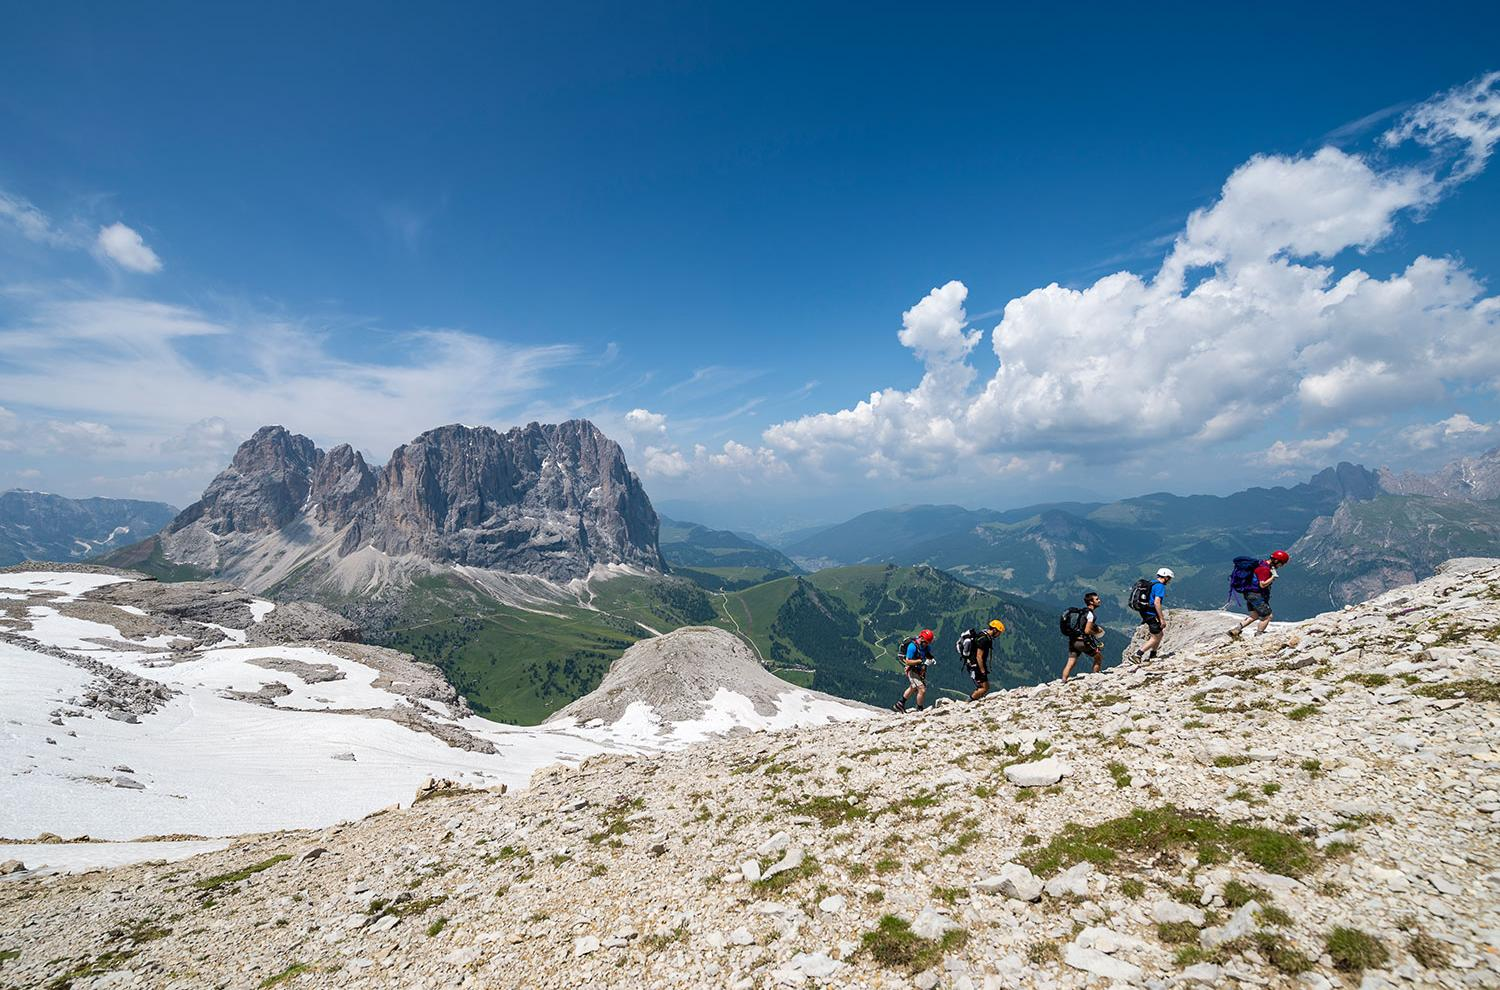 Hiking in the Sella Group, Pössnecker